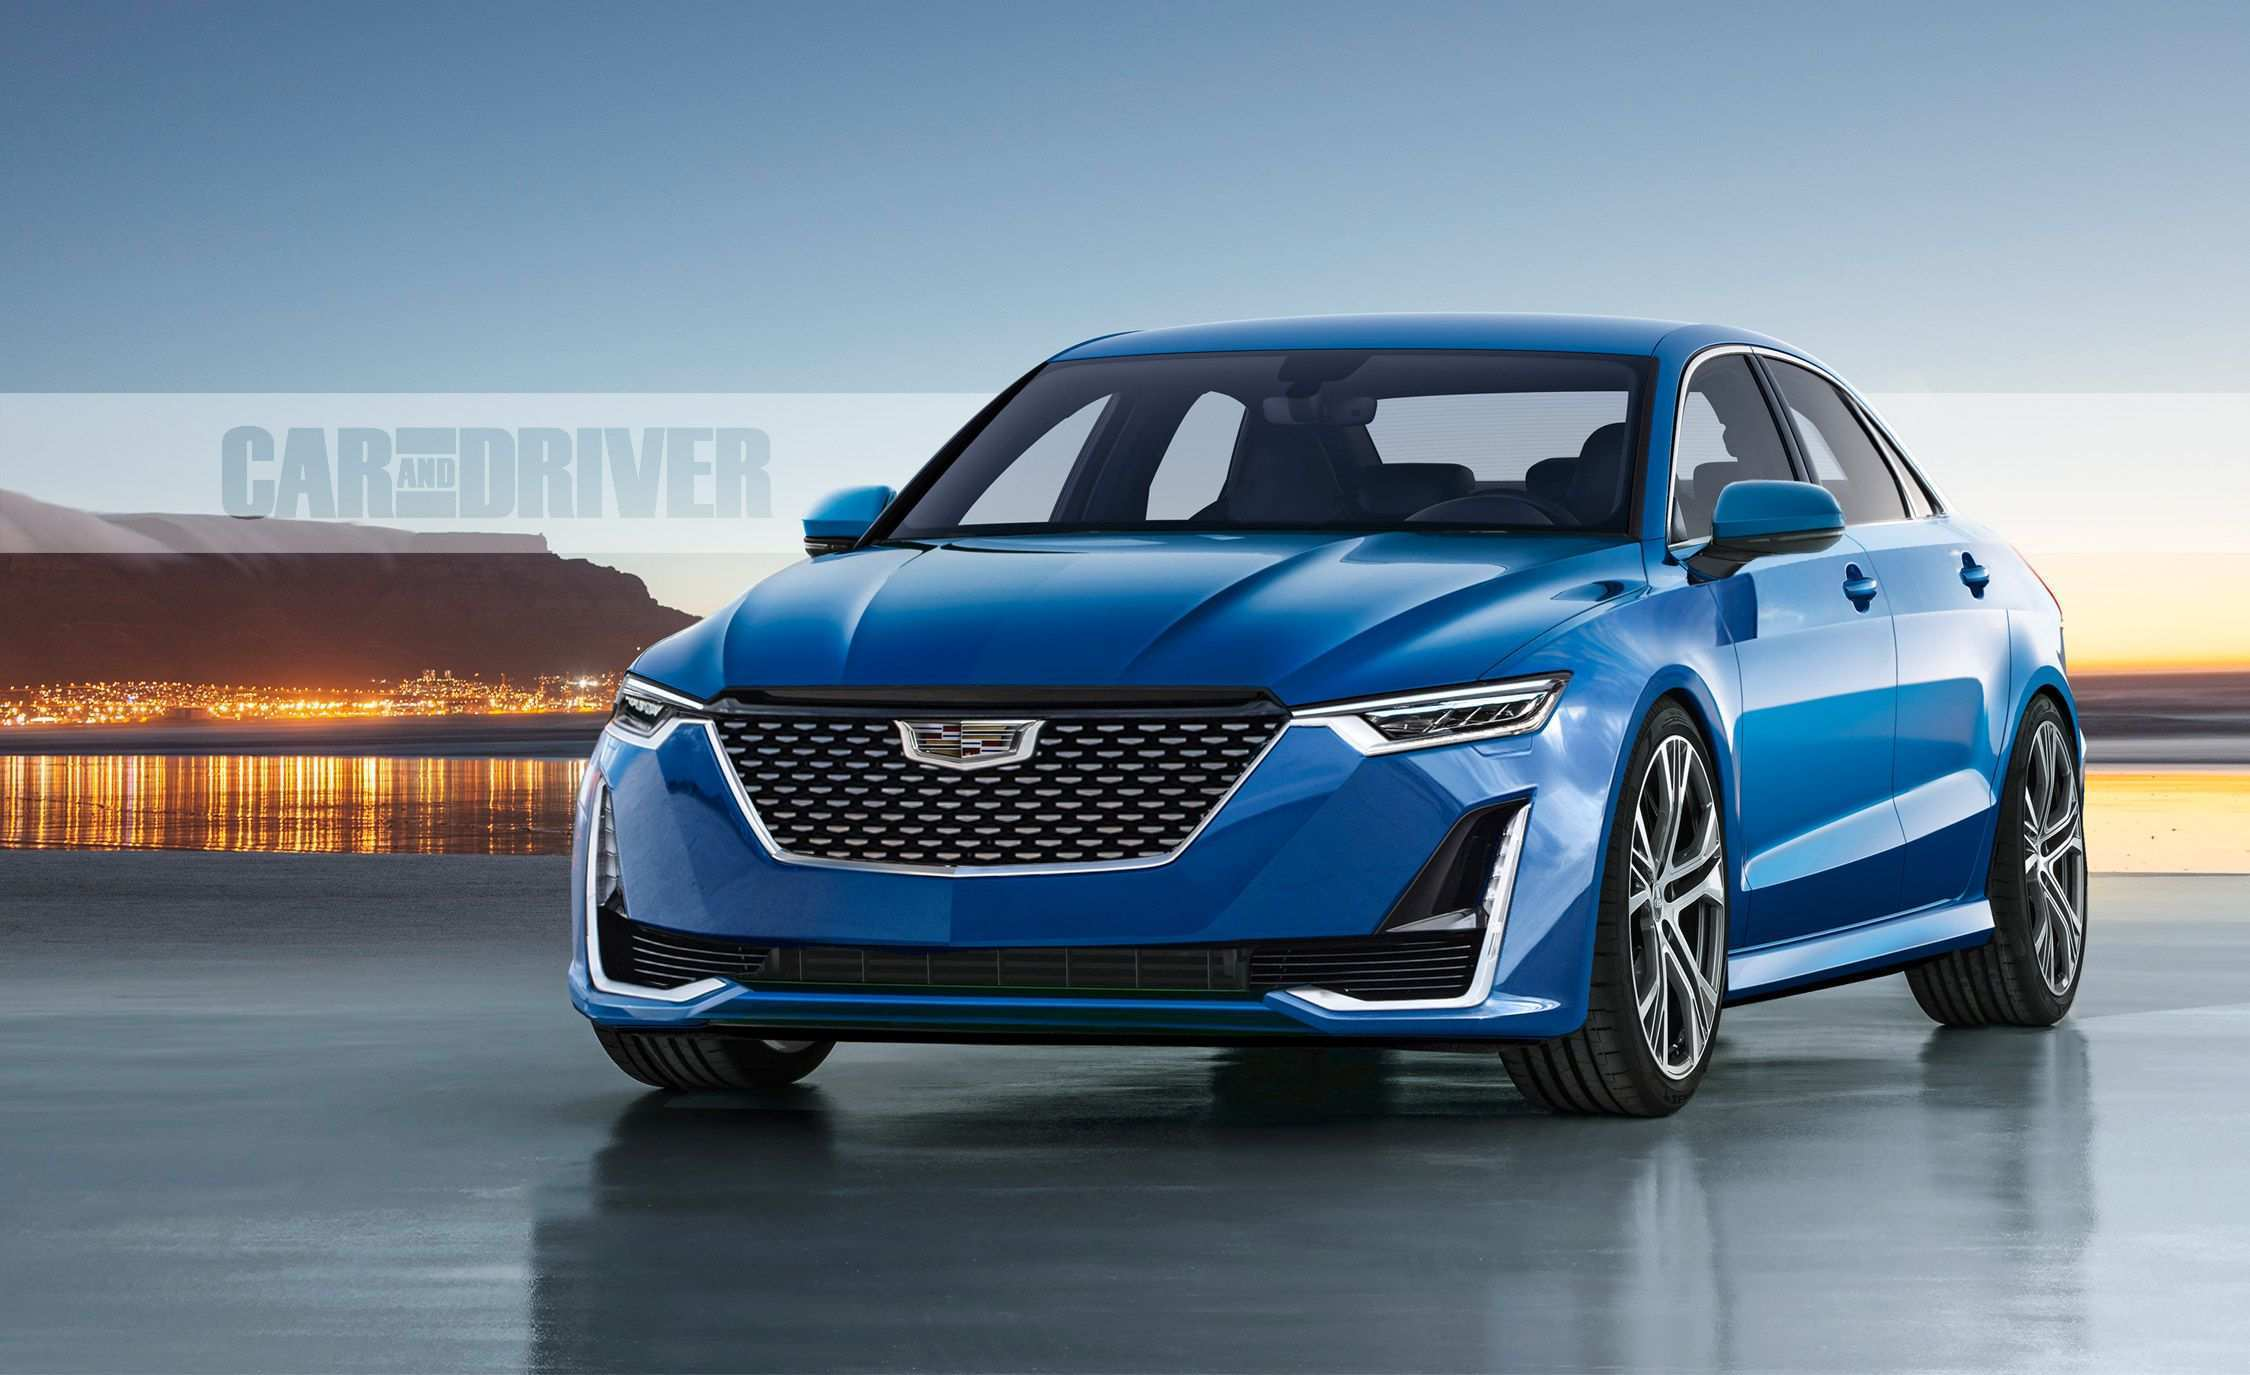 41 Best Review 2019 Cadillac Ct5 Review for 2019 Cadillac Ct5